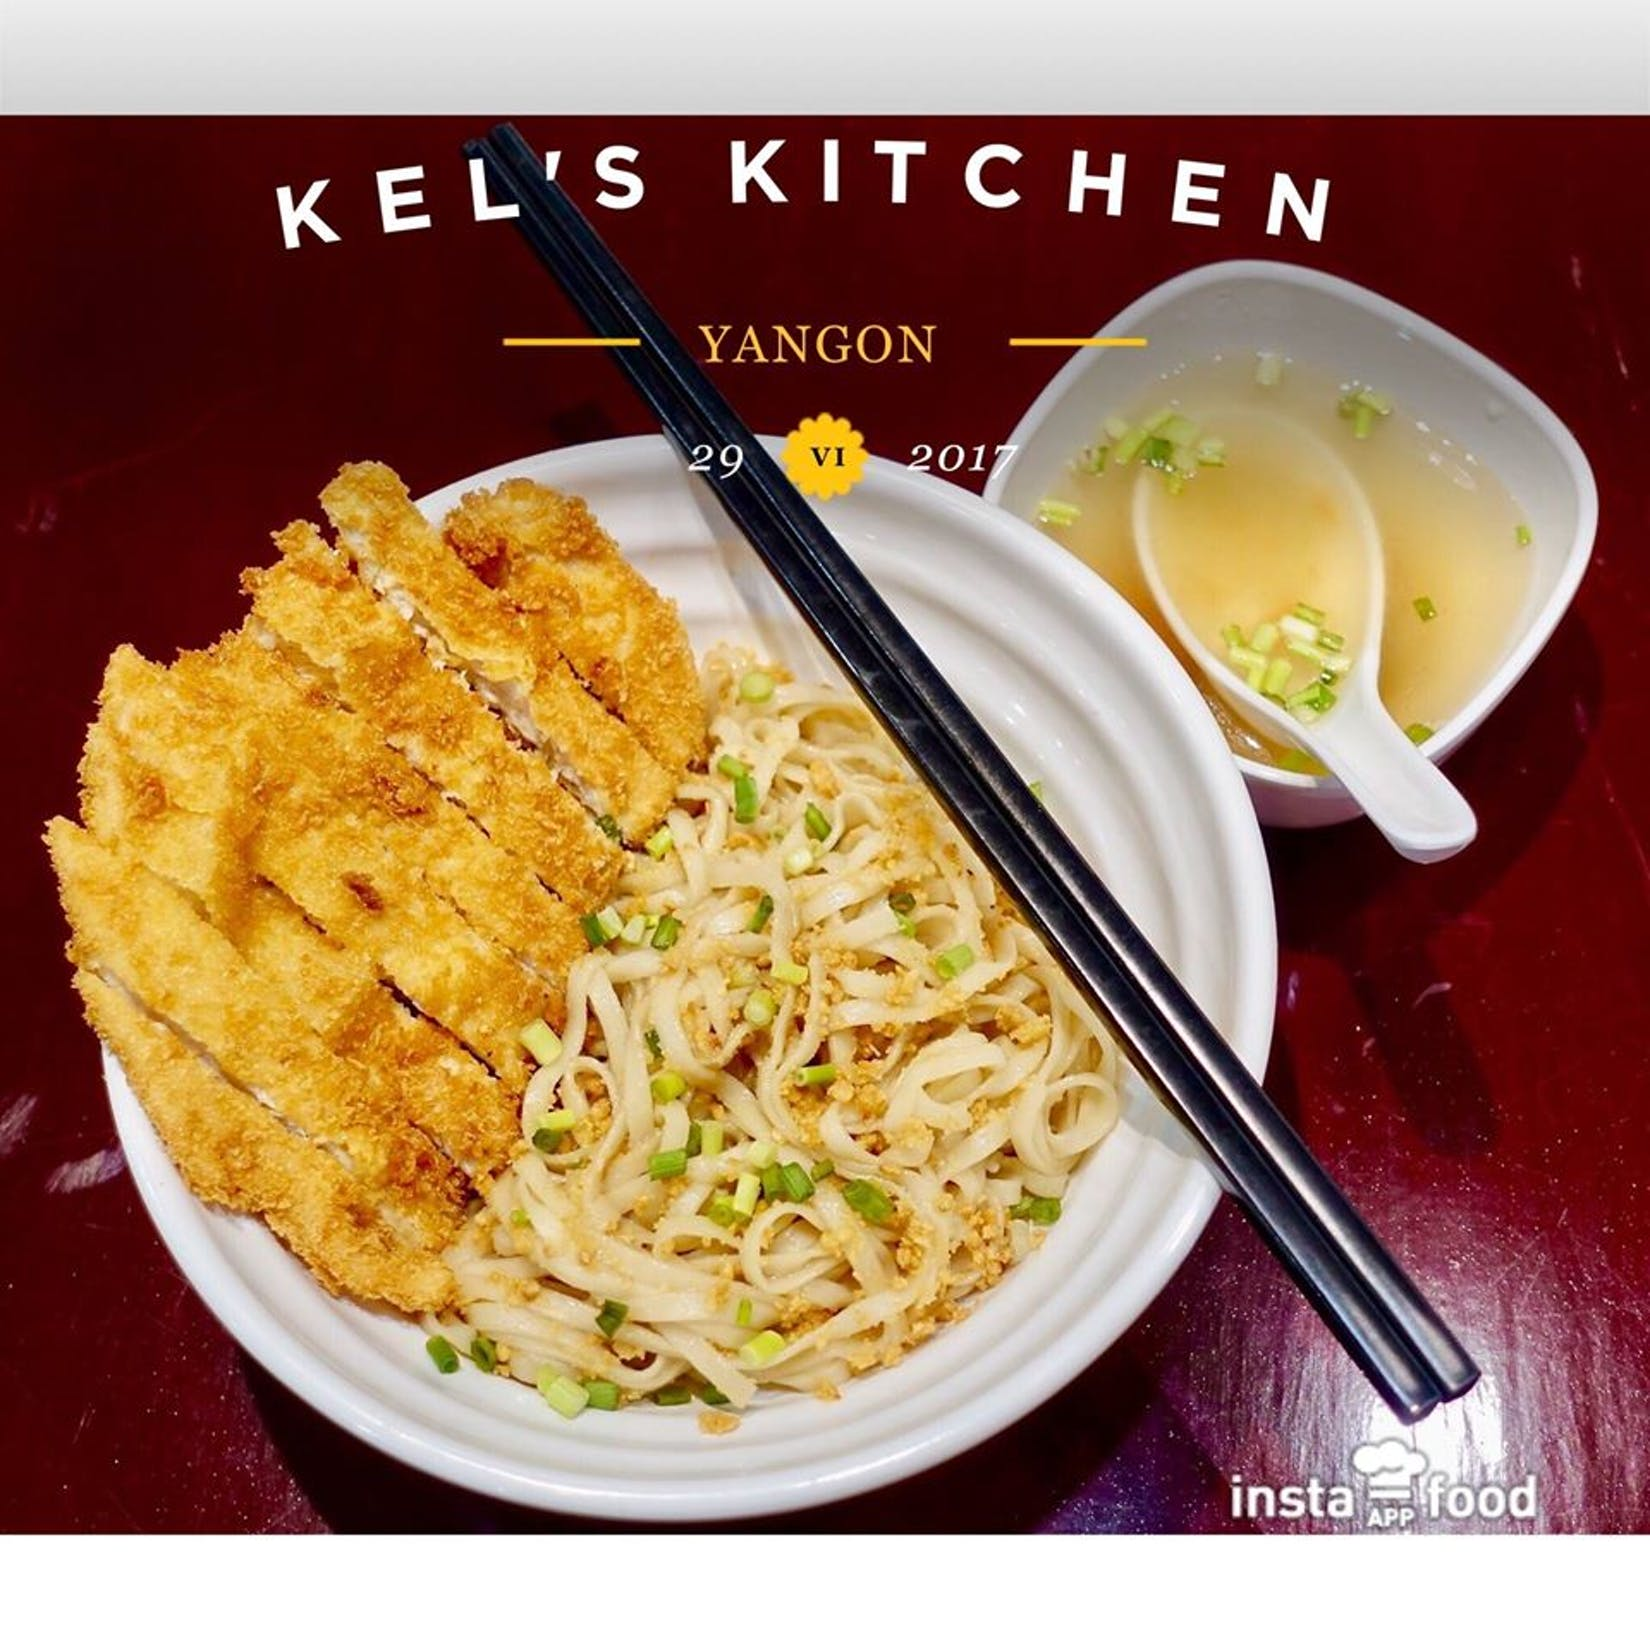 Kel's Kitchen at T1 Yangon Airport | yathar